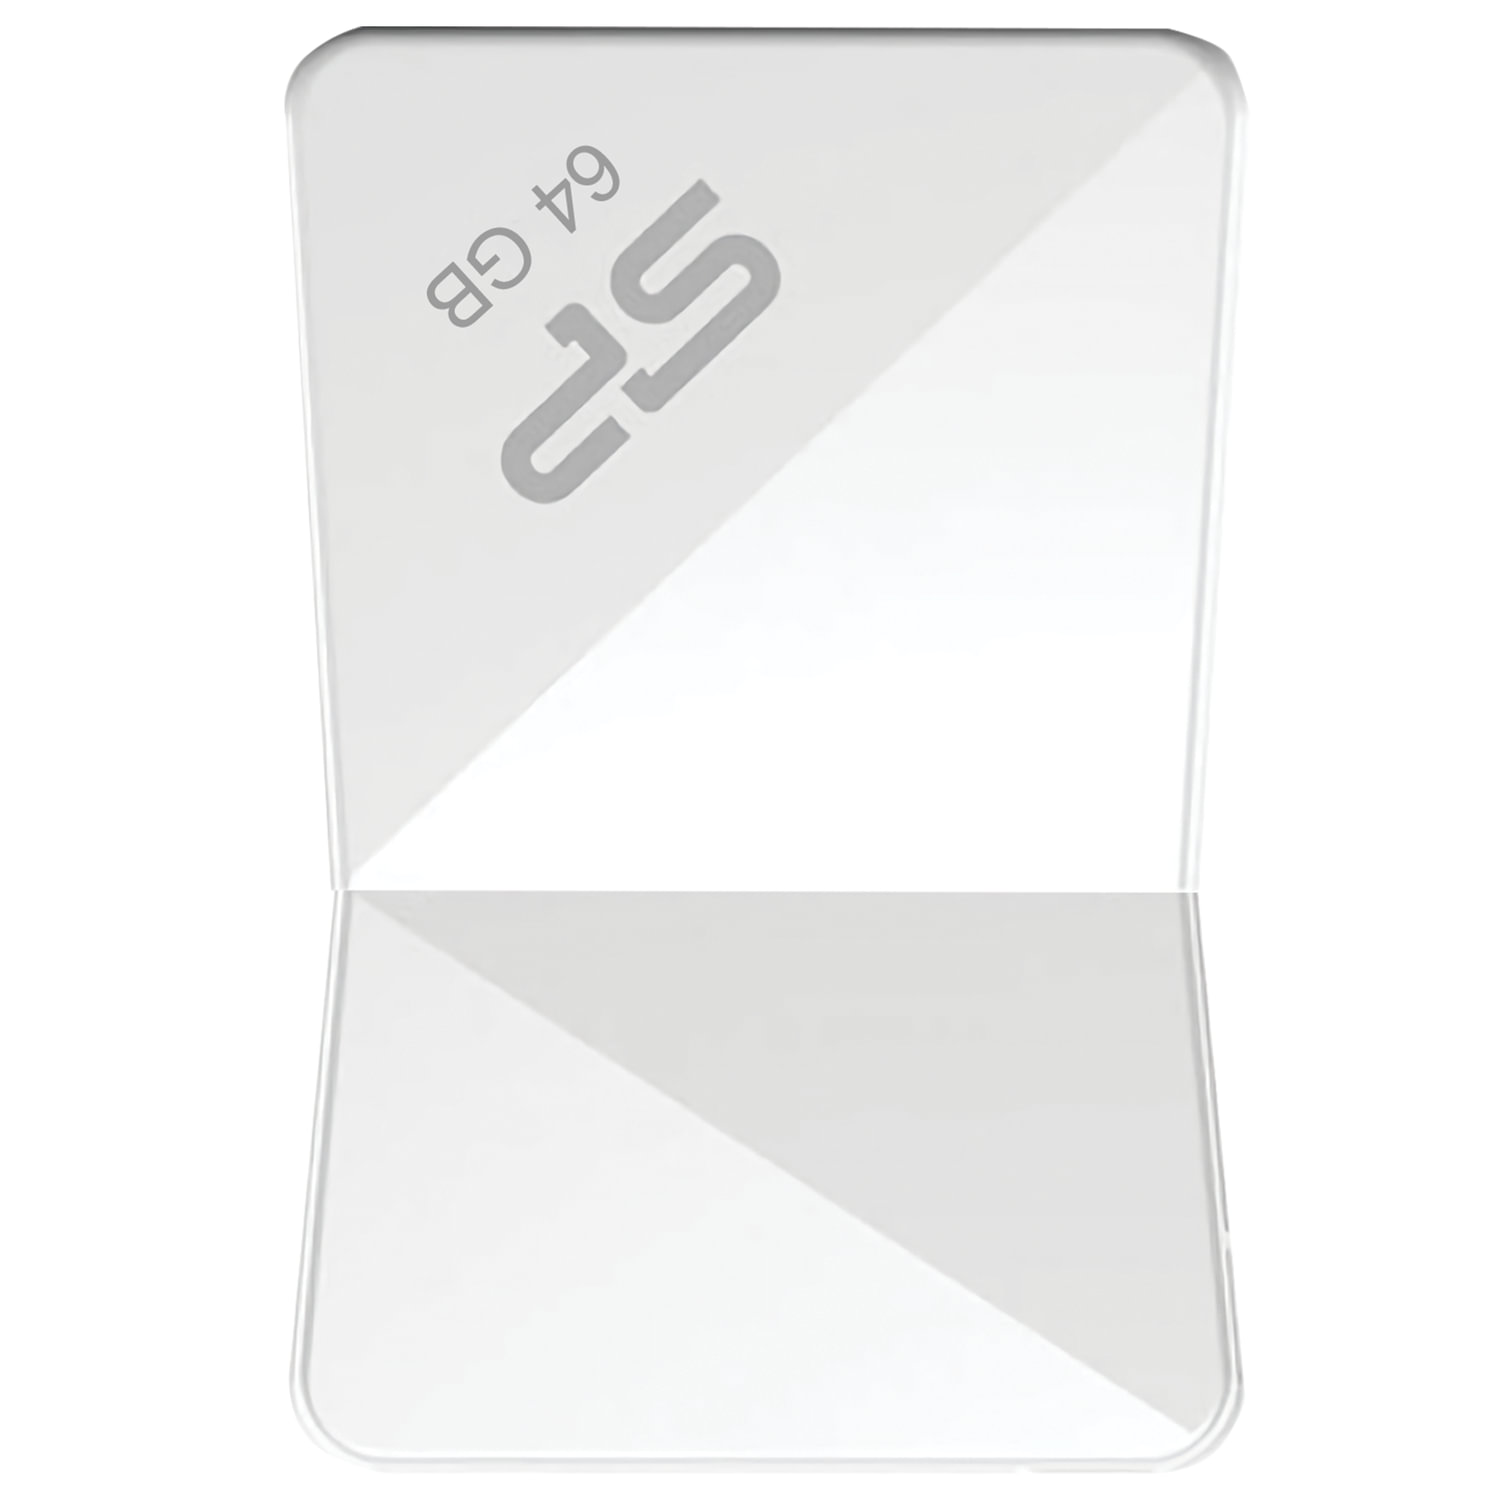 Флеш-диск 64 GB, SILICON POWER Touch T08, USB 2.0, белый, SP64GBUF2T08V1W